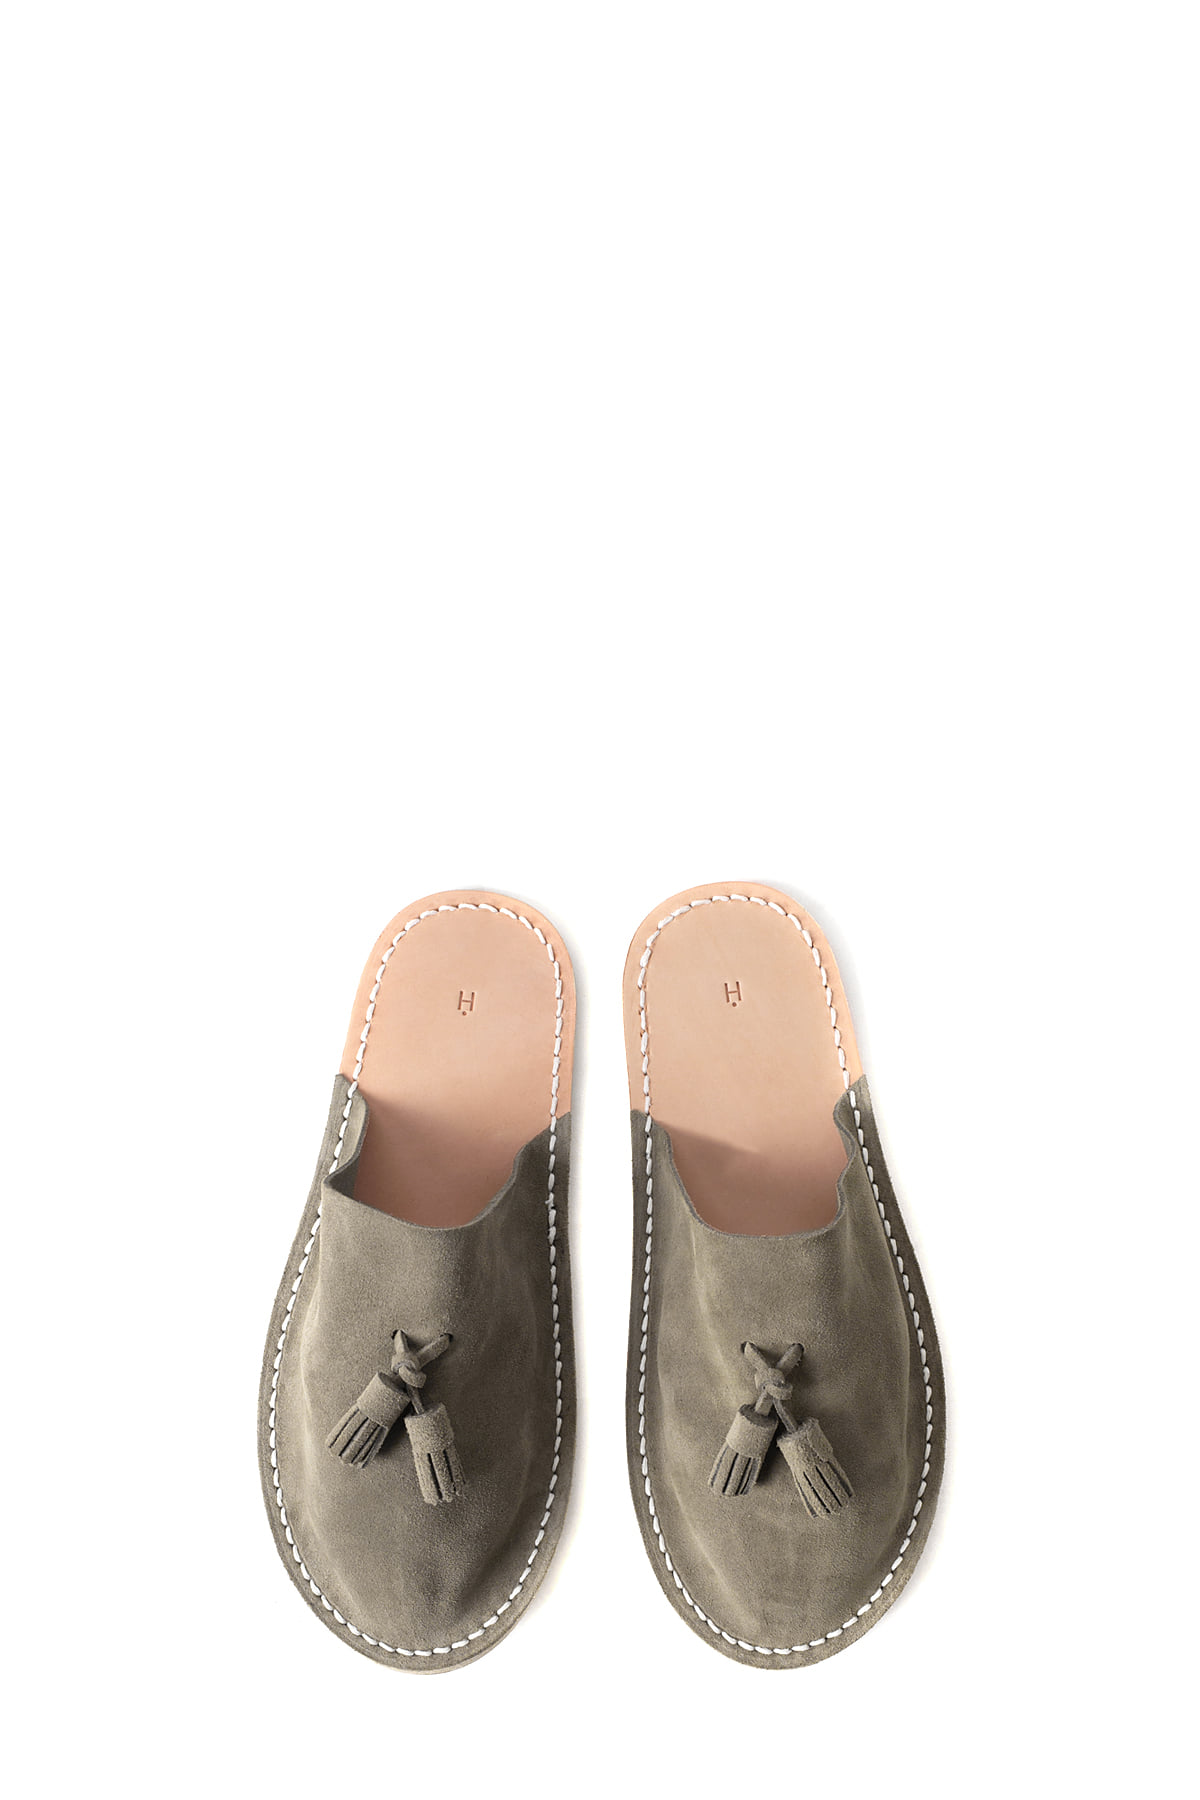 Hender Scheme : Leather Slipper (Beige)